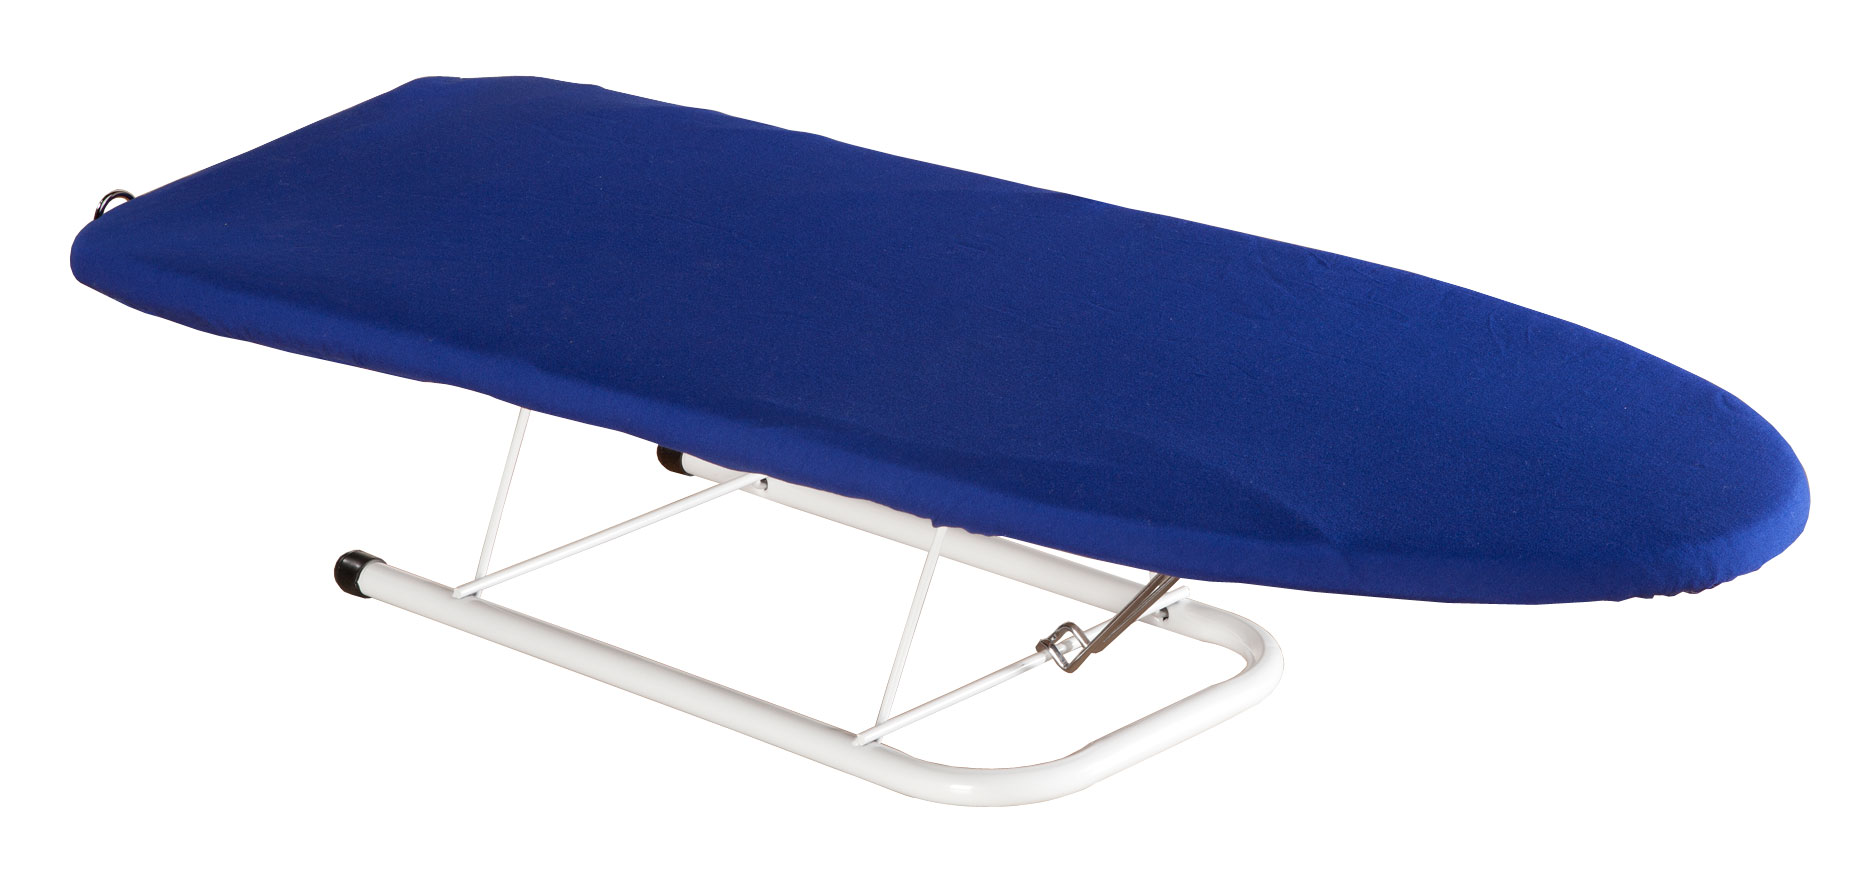 Tabletop Ironing Board Cover